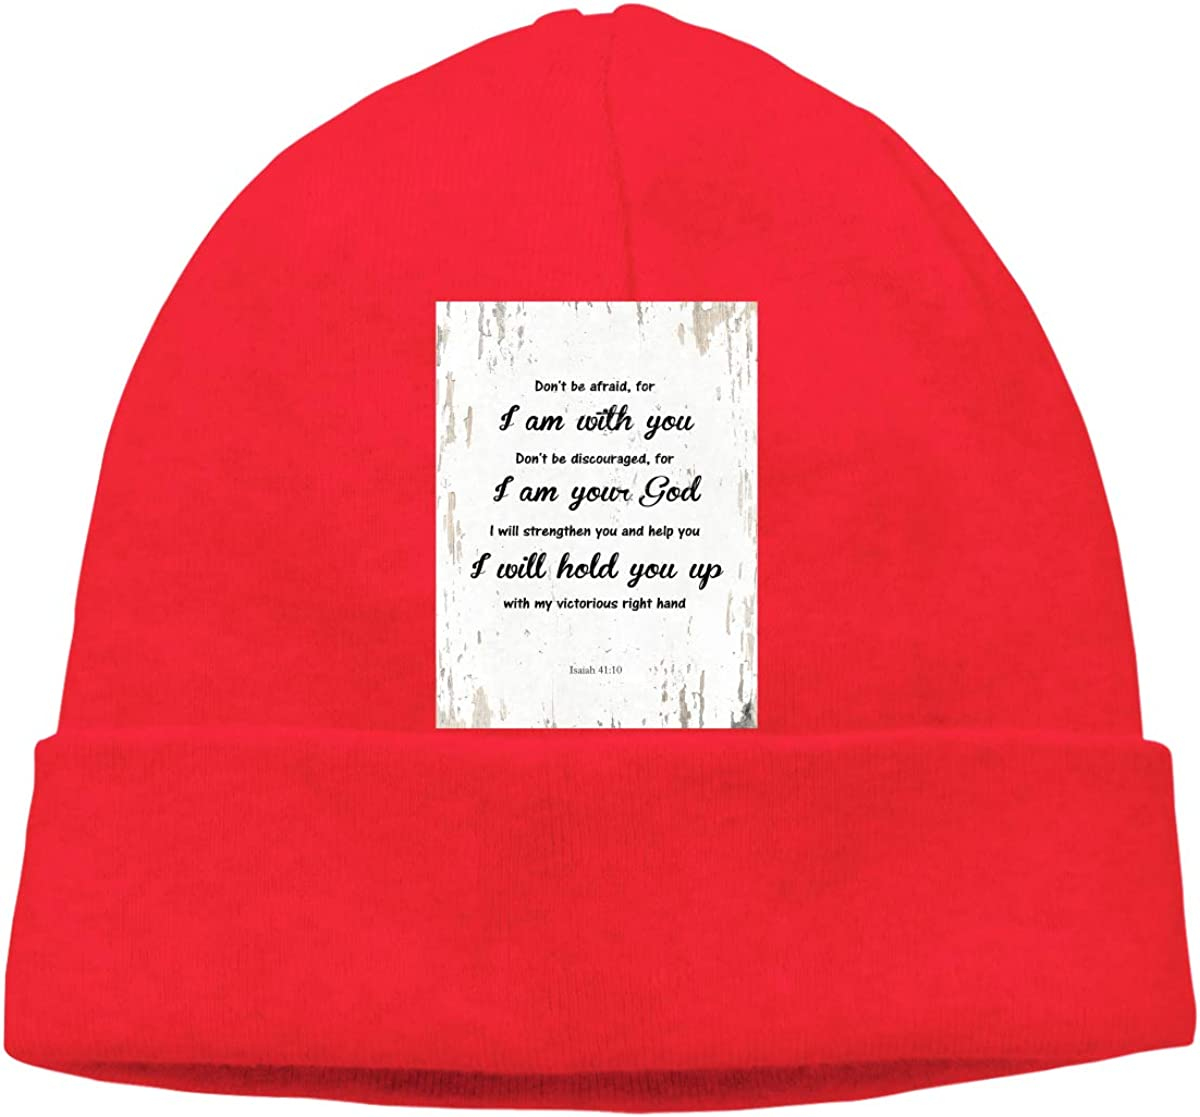 Dont Be Afraid for I Am with You Mens Beanie Cap Skull Cap Winter Warm Knitting Hats.